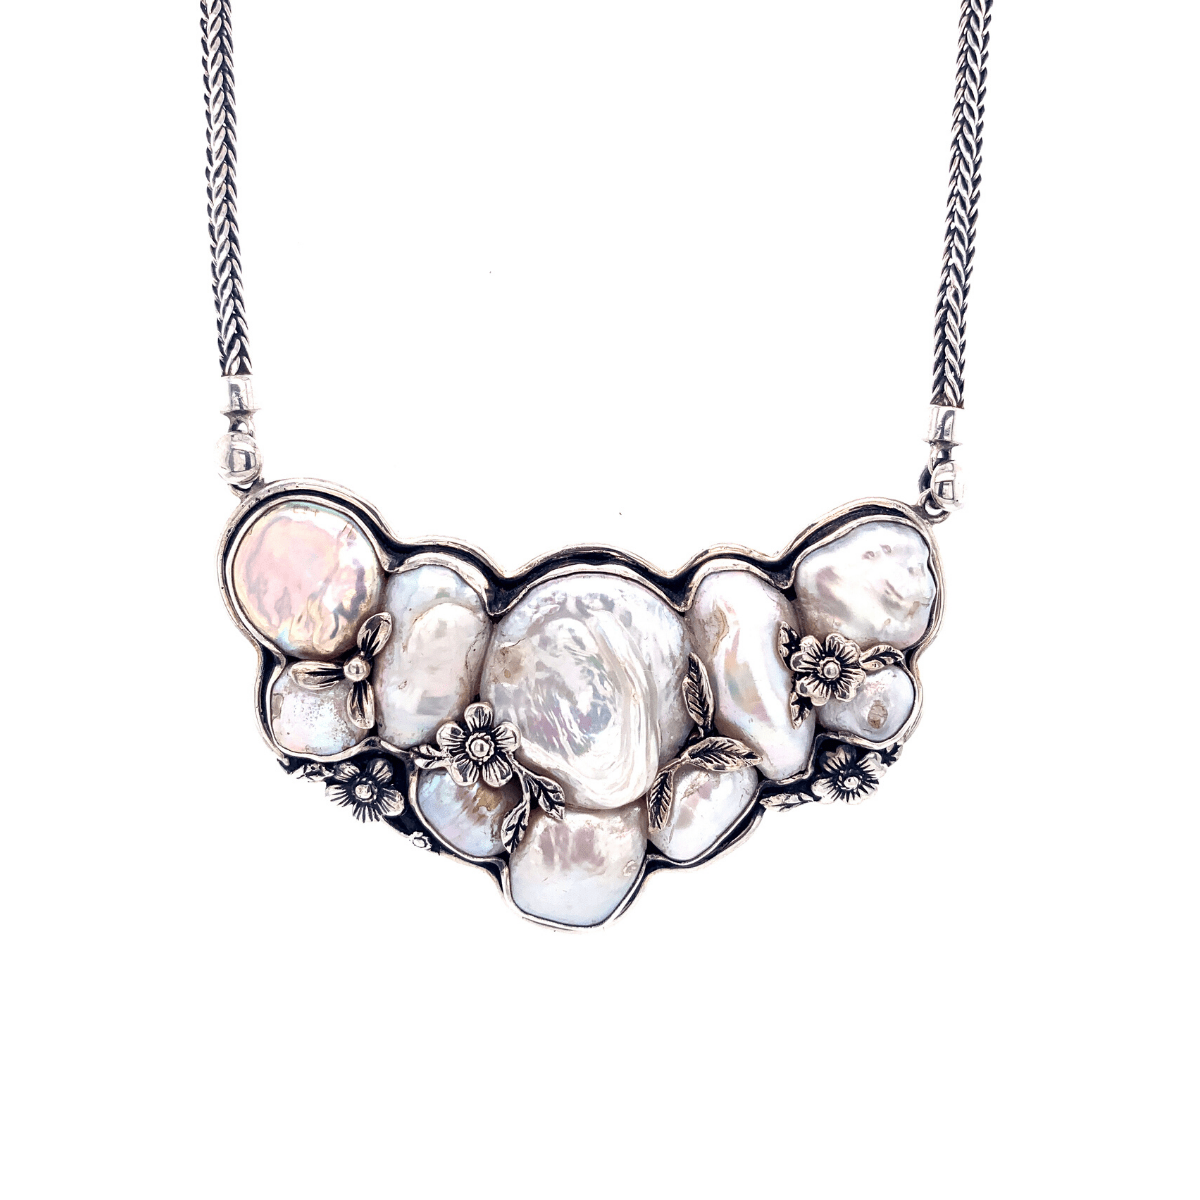 Baroque Freshwater Pearl & Sterling Silver Bib Necklace - Qinti - The Peruvian Shop